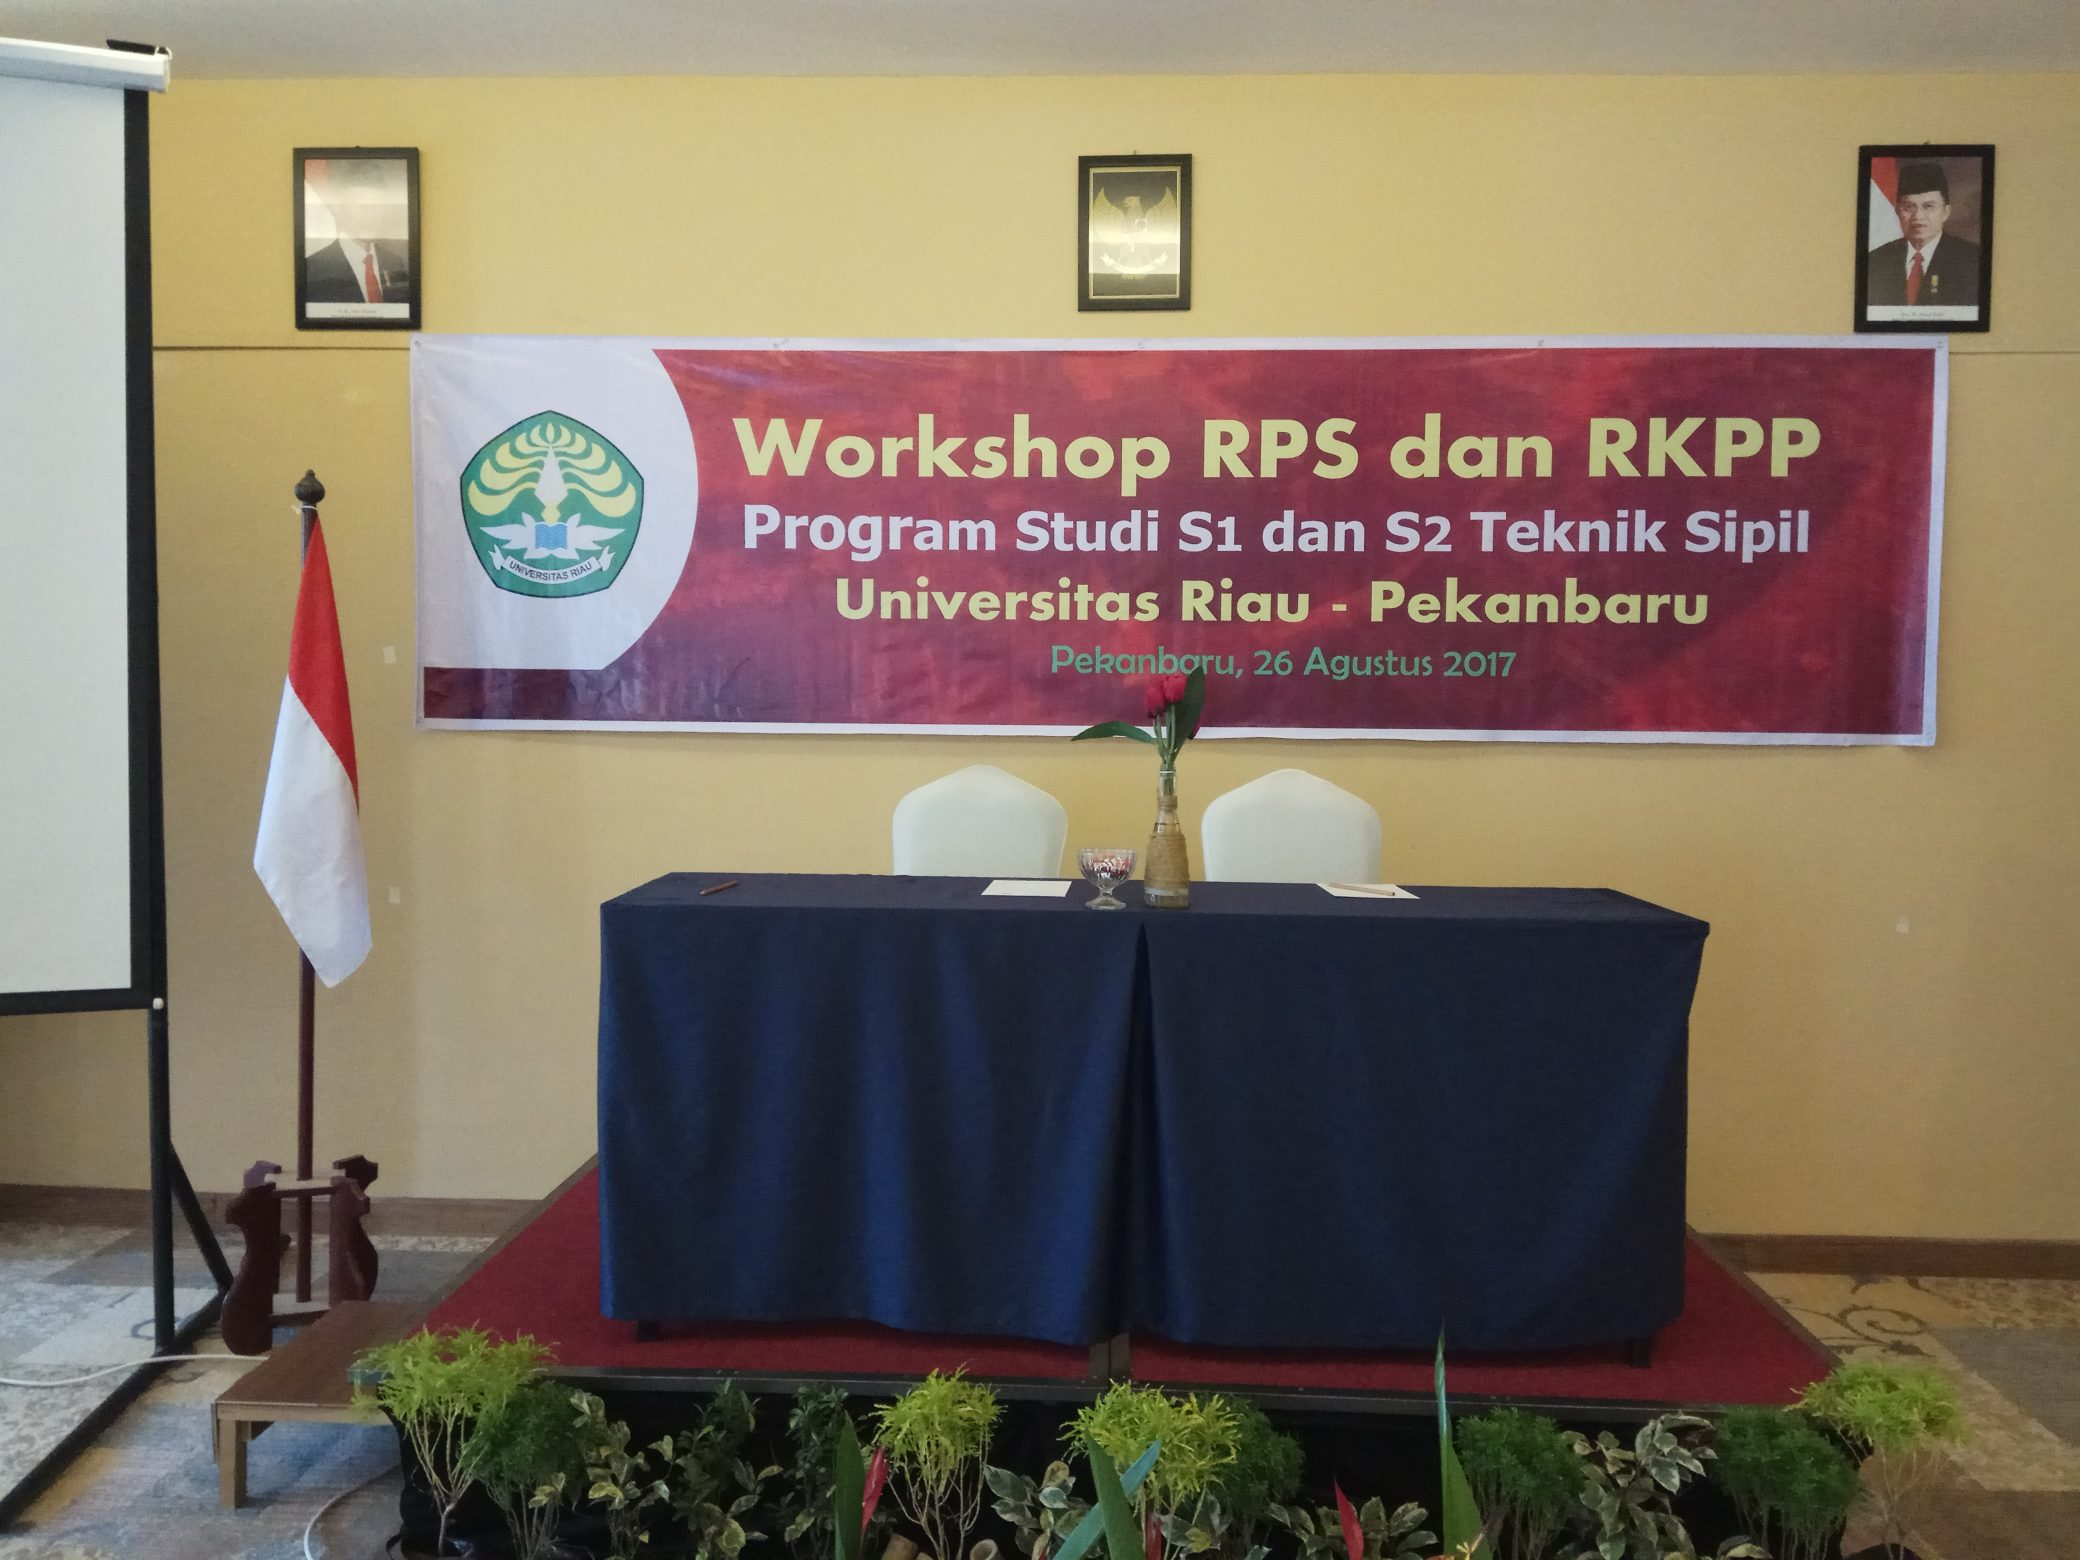 Workshop RPS dan RKPP